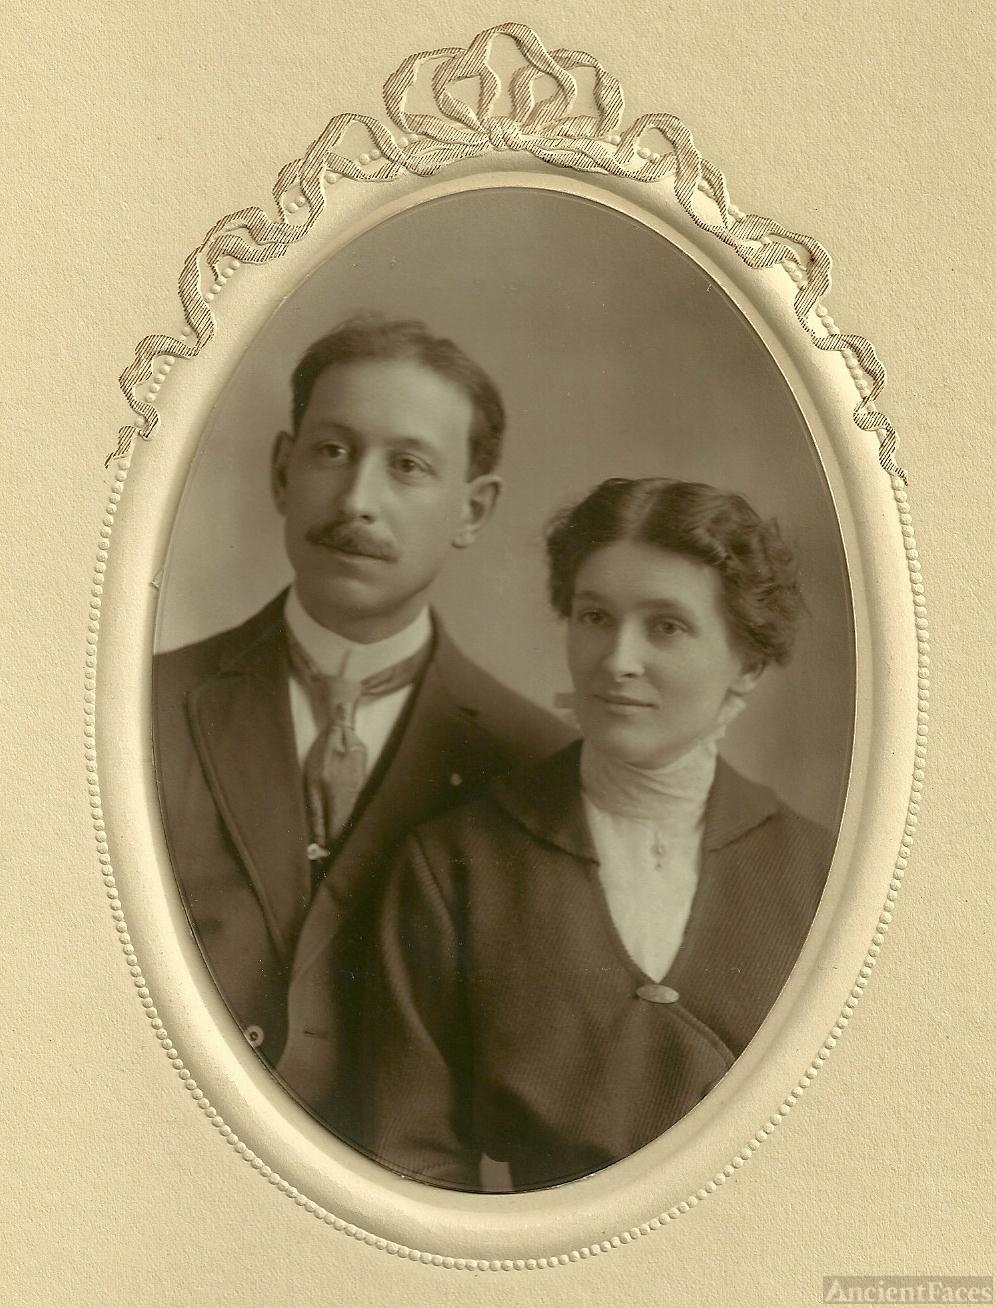 Pierre McGee and Laura Bella Paradis